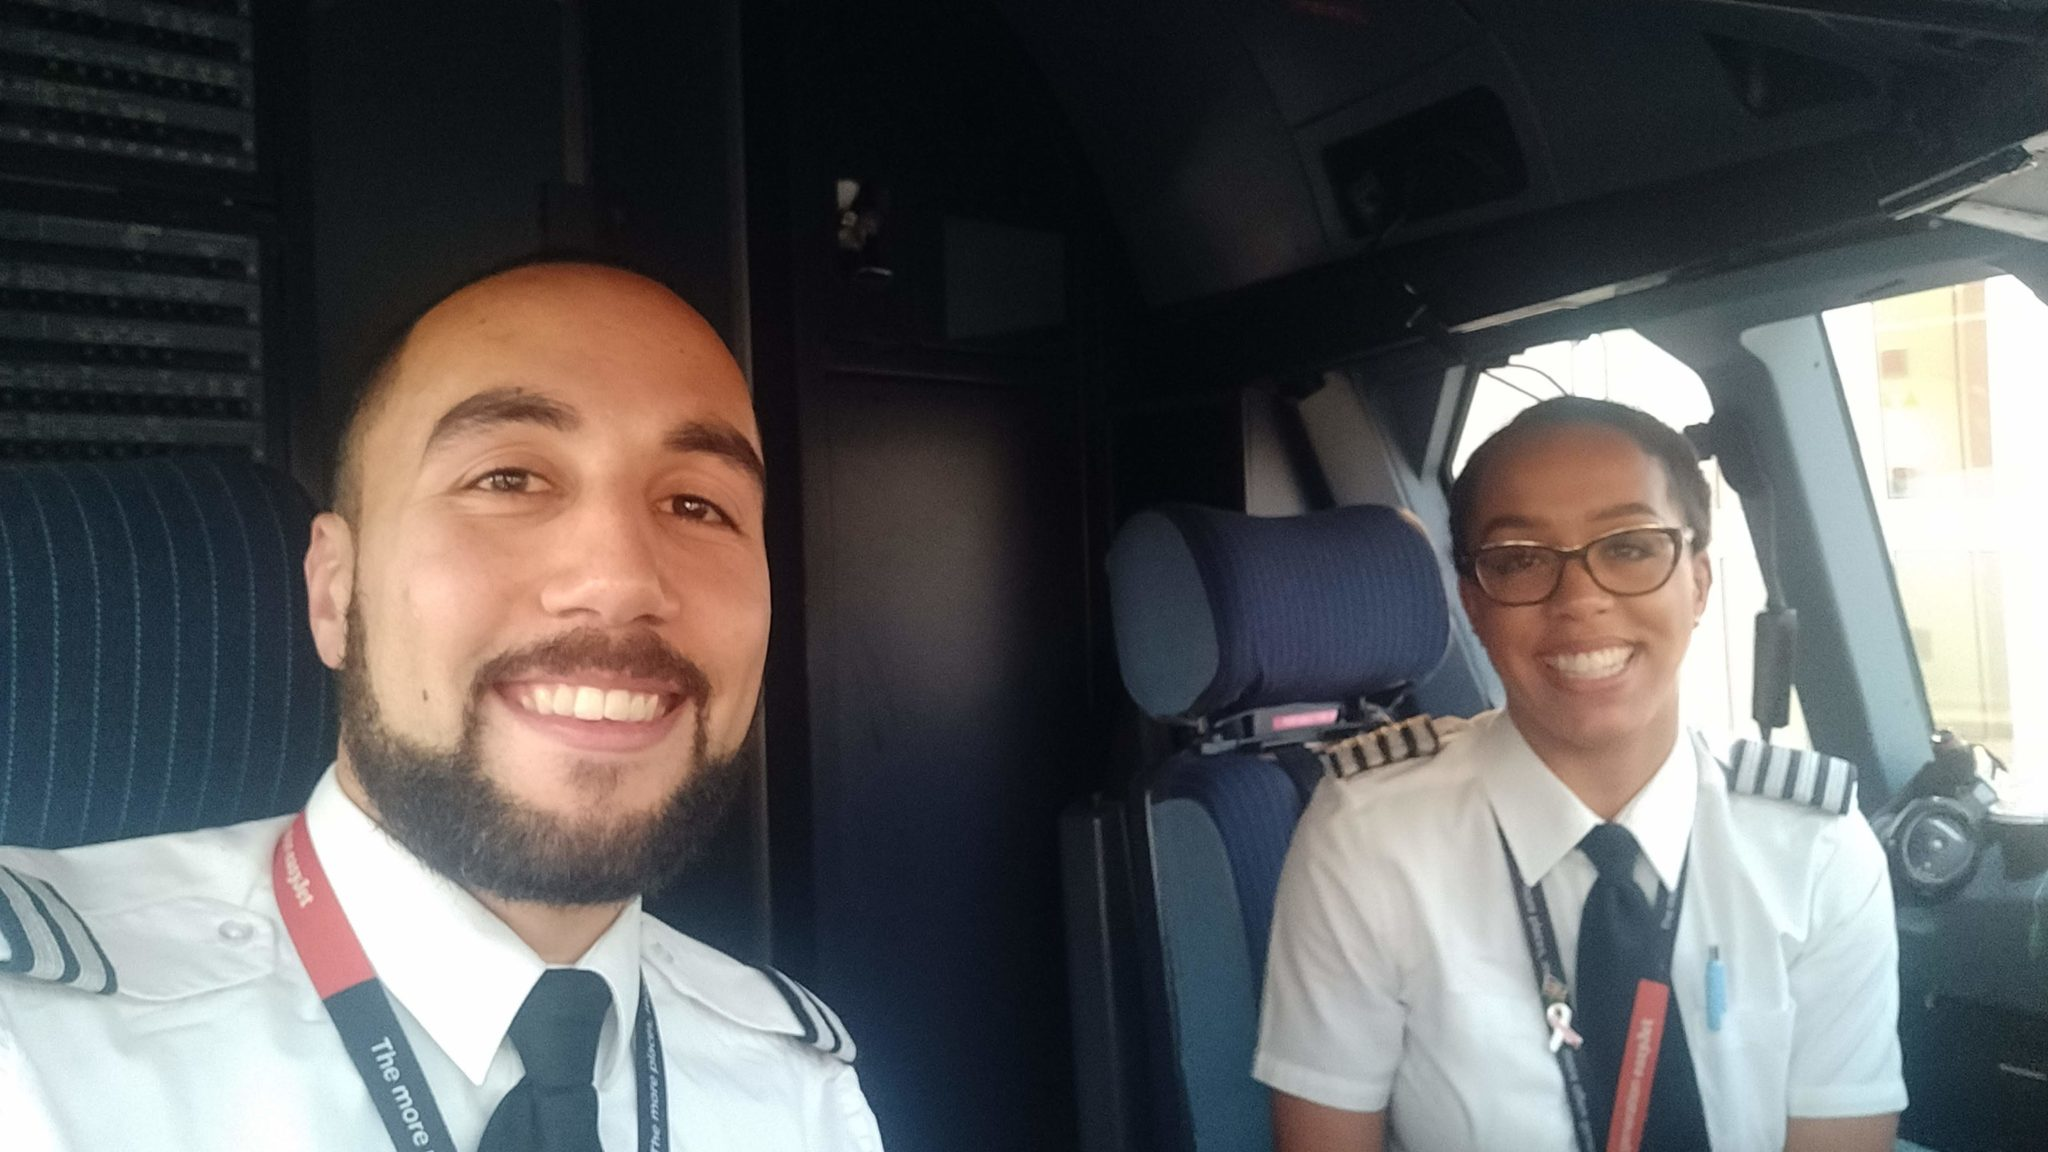 Reach your dreams with pilots Michelle and Aaron